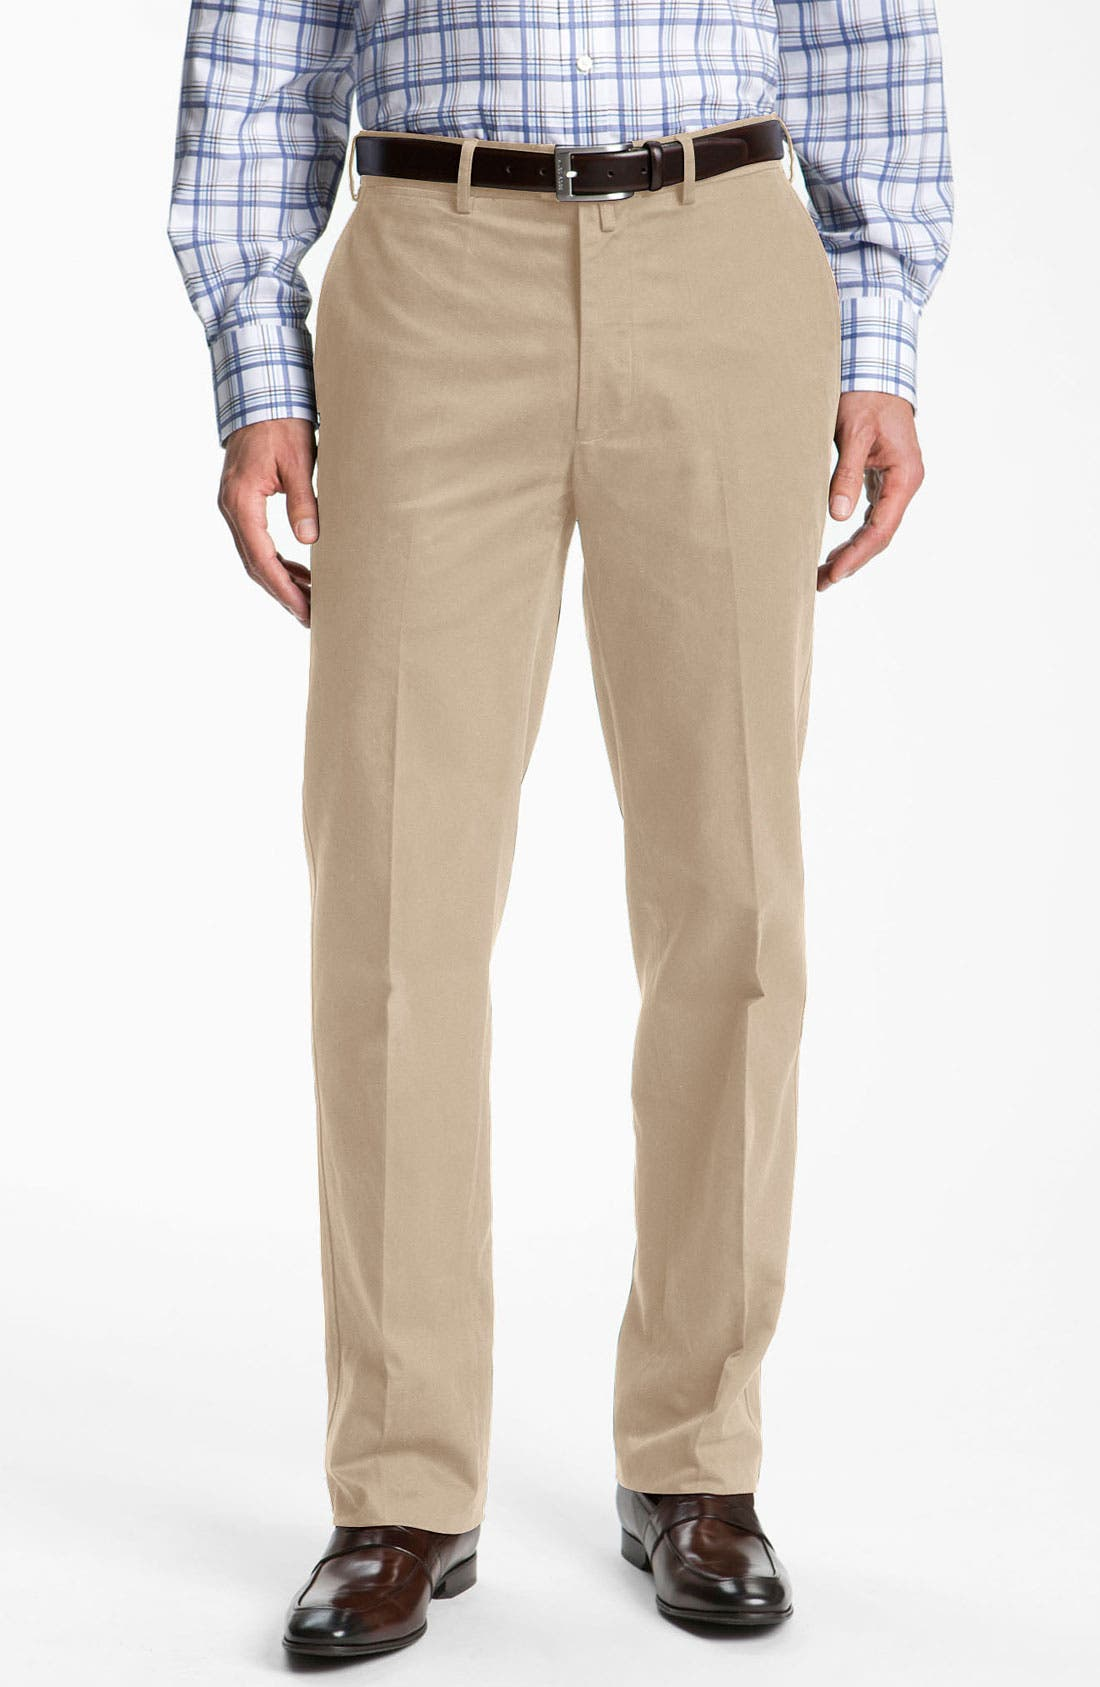 Alternate Image 1 Selected - Façonnable 'Savon' Flat Front Cotton Trousers